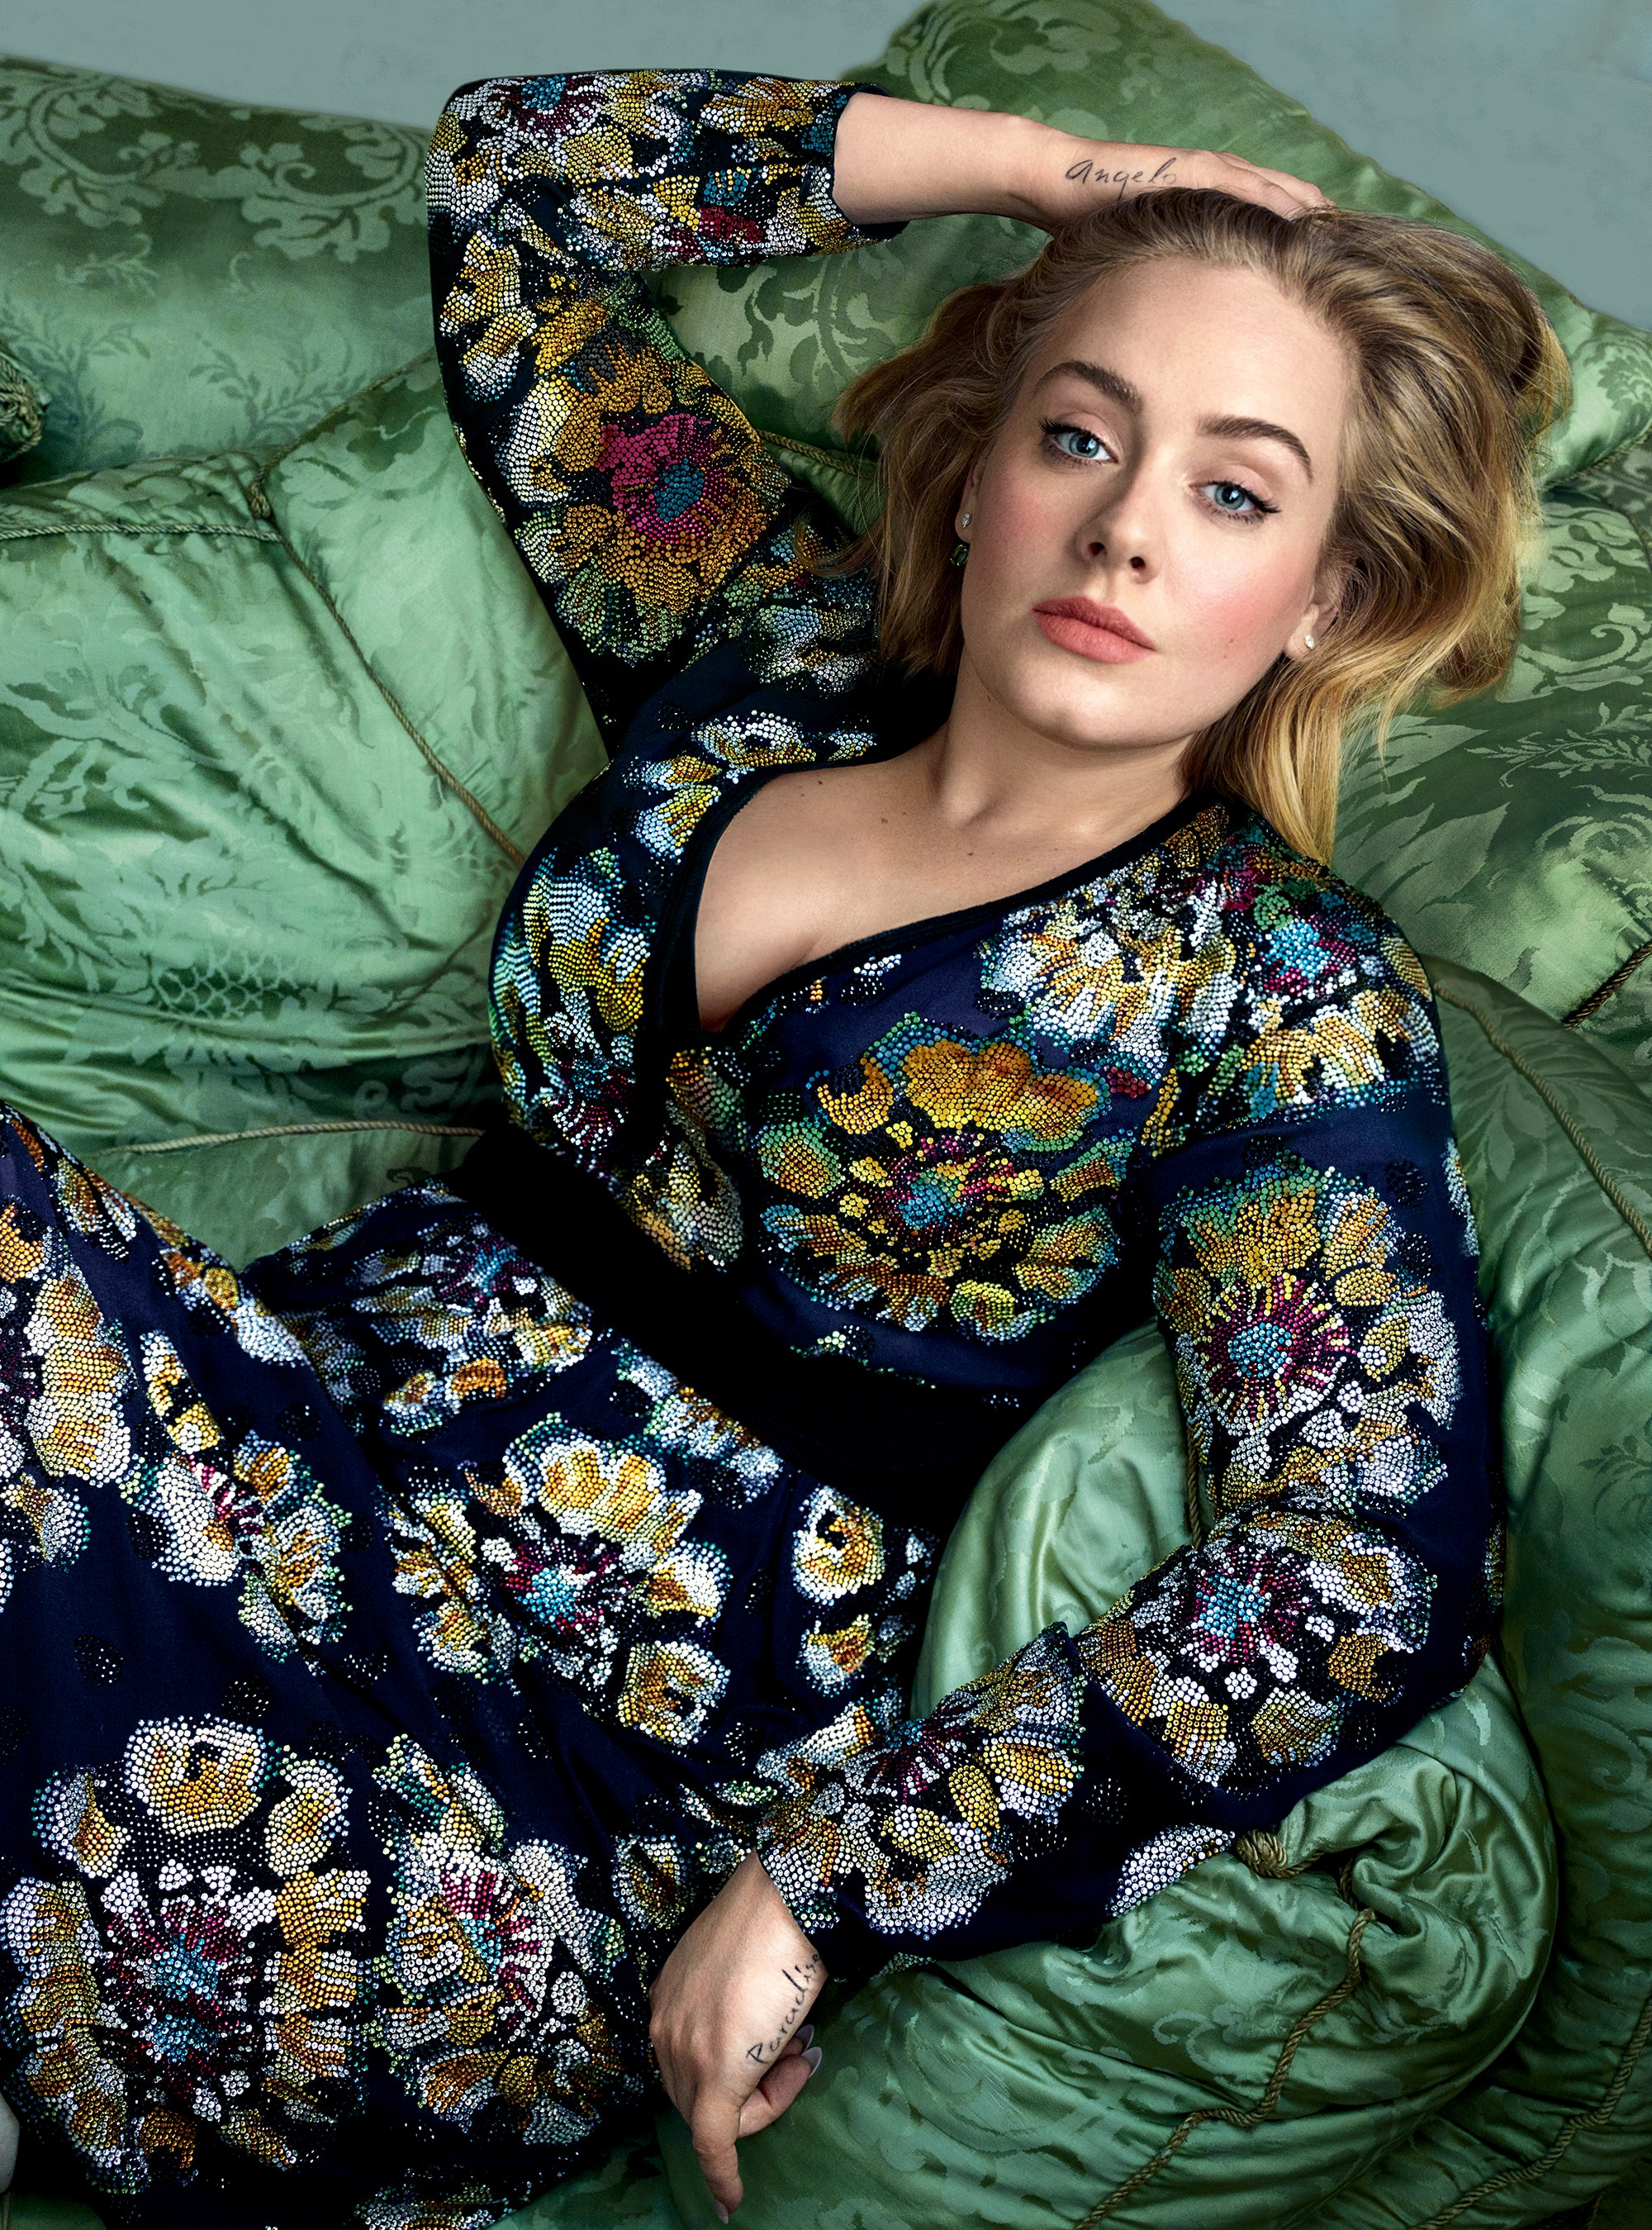 Adele Vogue March 2016 C Annie Leibovitz